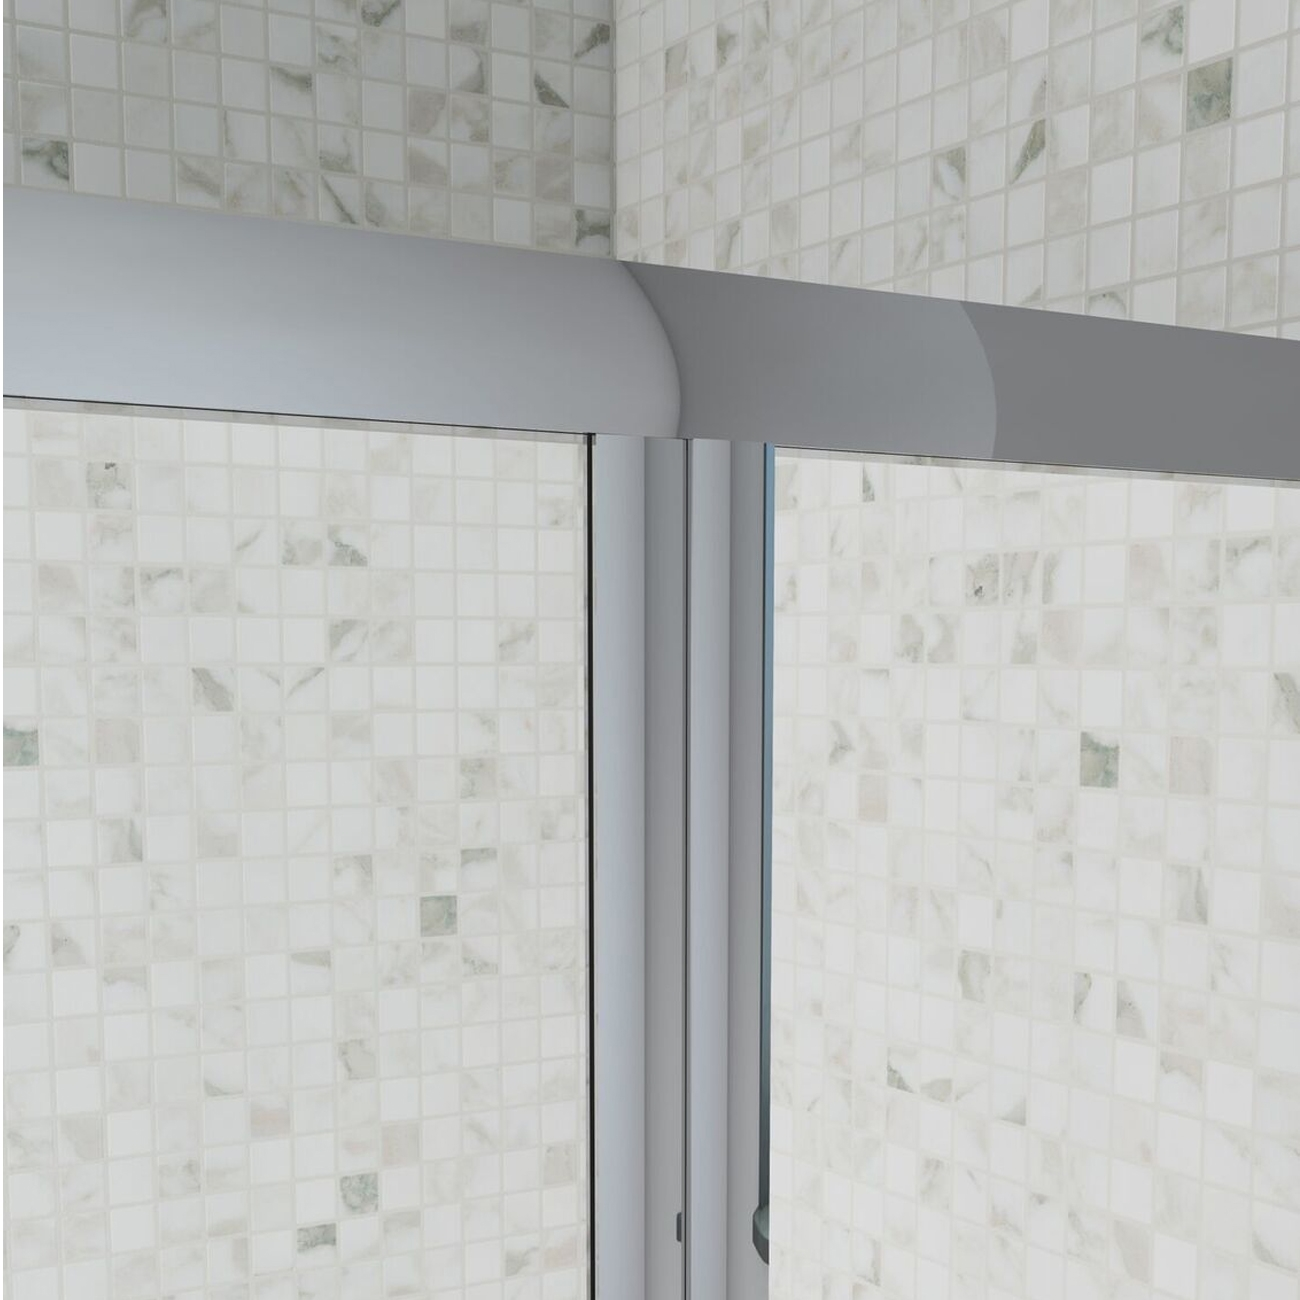 Cali Seis Bi-Fold Door Shower Enclosure 900mm x 760mm - 4mm Glass-1